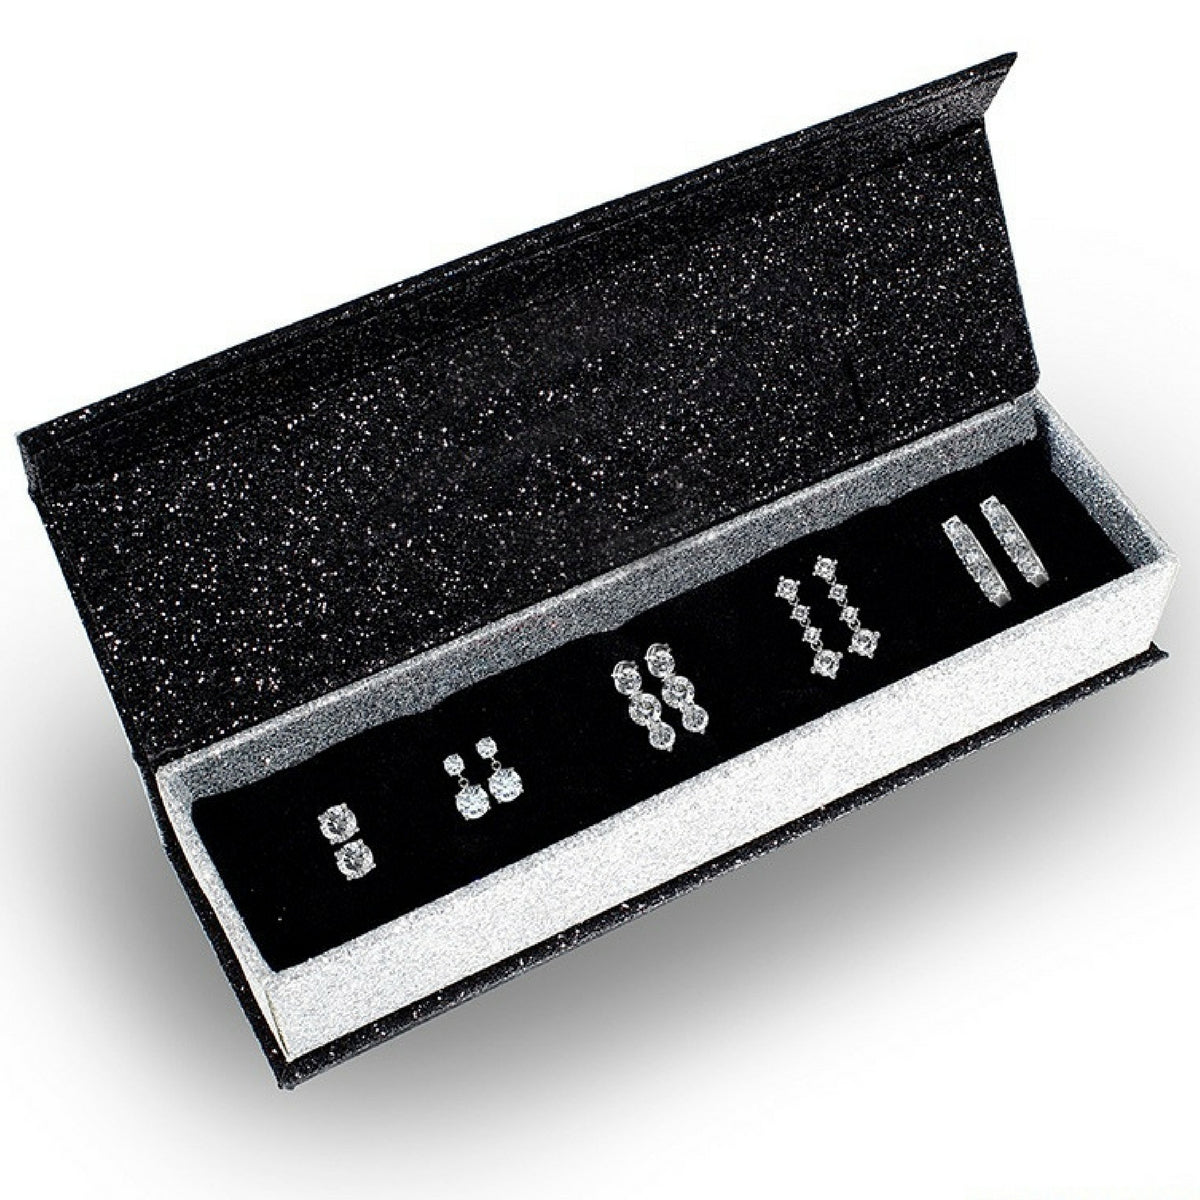 Boxed Swarovski Crystal Earring Set - 5 Pair